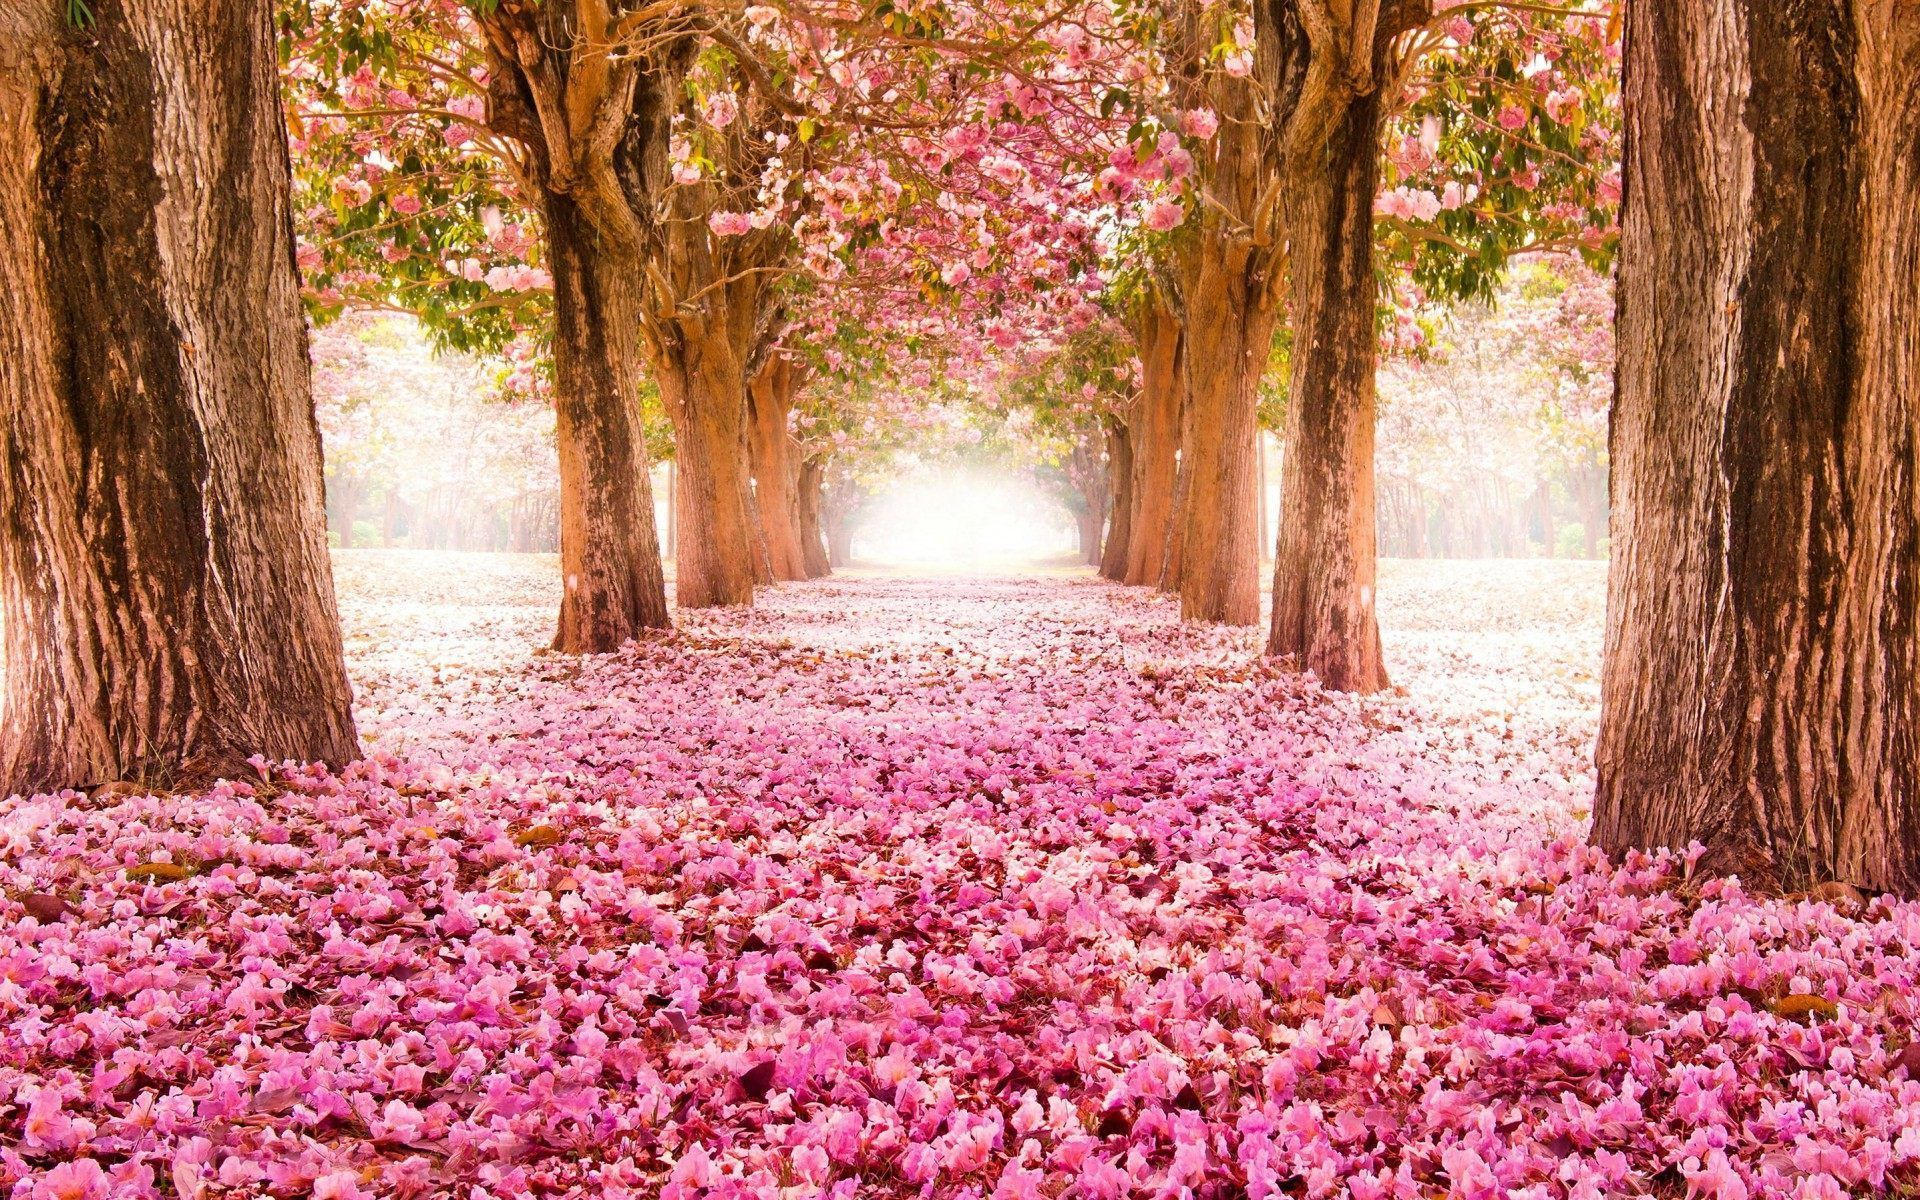 Spring Flowers Wallpapers Hd Wallpapers Backgrounds Images Spring Wallpaper Cherry Blossom Wallpaper Tree Tunnel